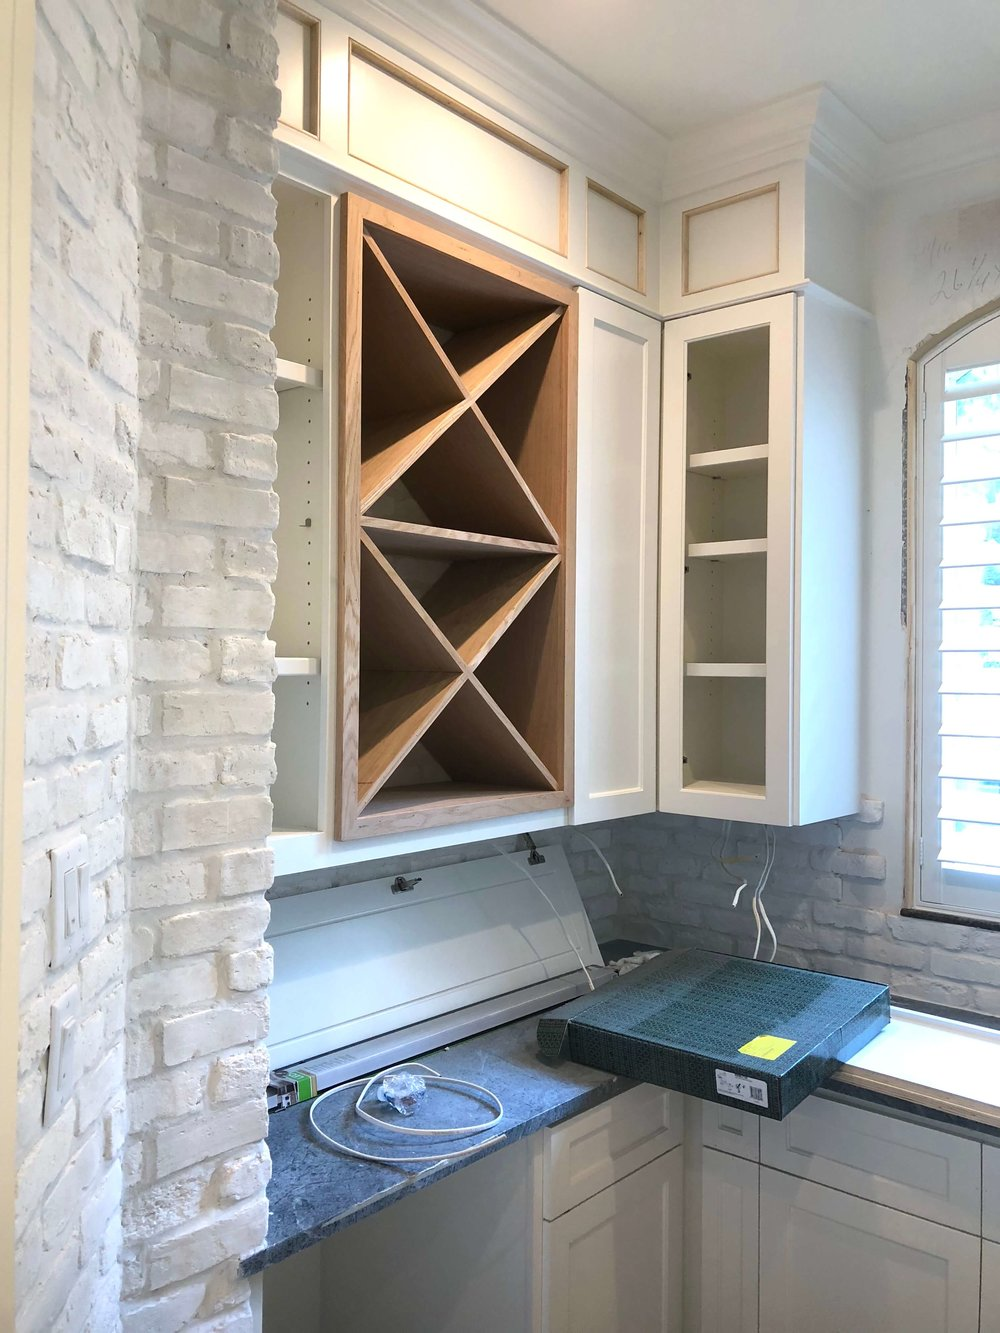 New built-in wine rack and cabinetry in Butler's pantry with brick walls and soapstone countertops